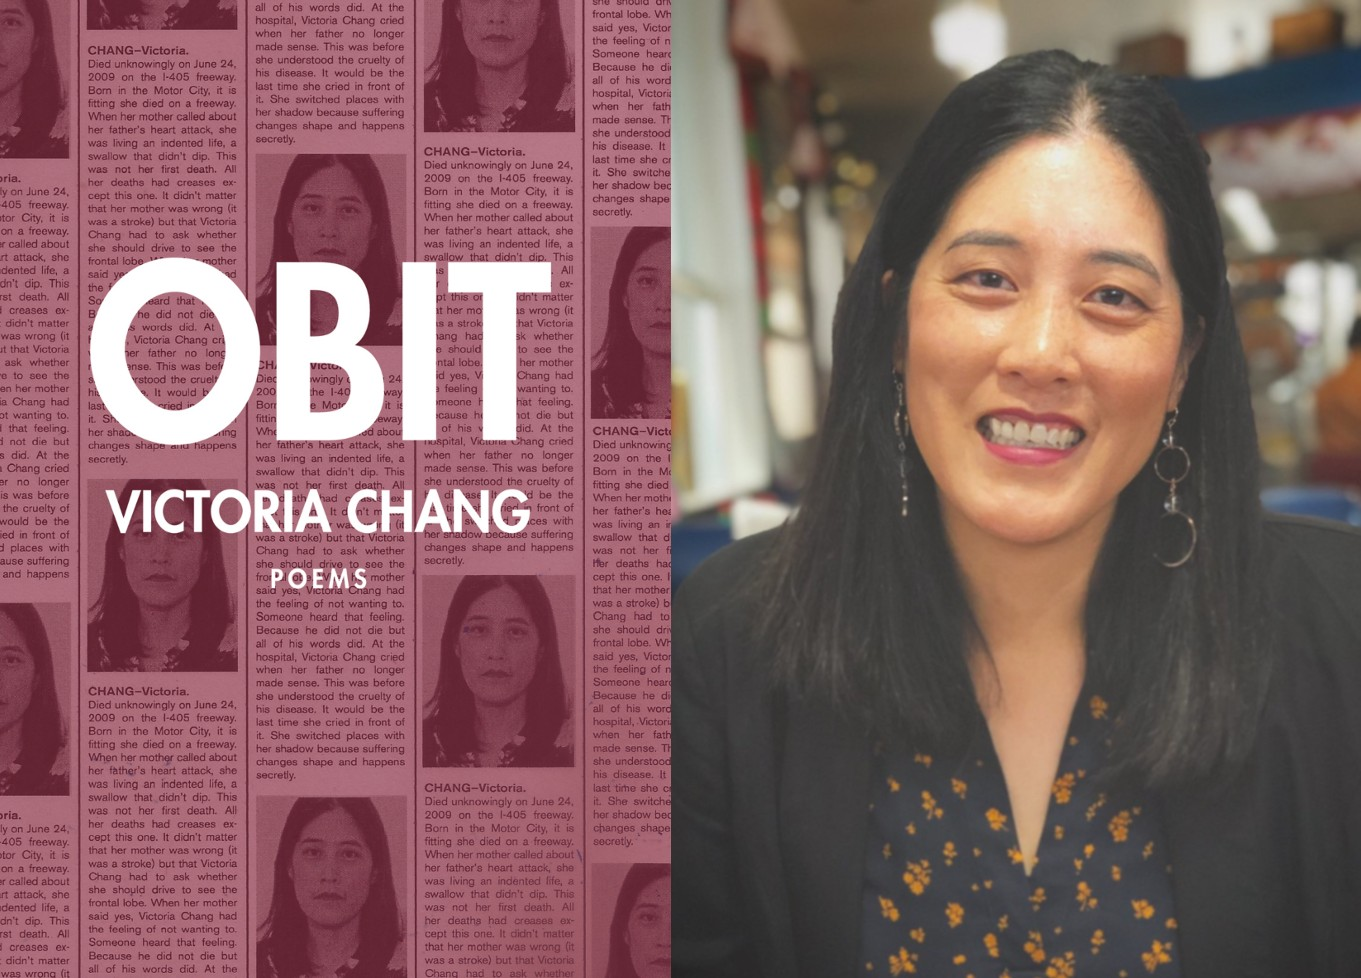 www.ideastream.org: Anisfield-Wolf: Victoria Chang, In Search Of Words For Grief In 'Obit'